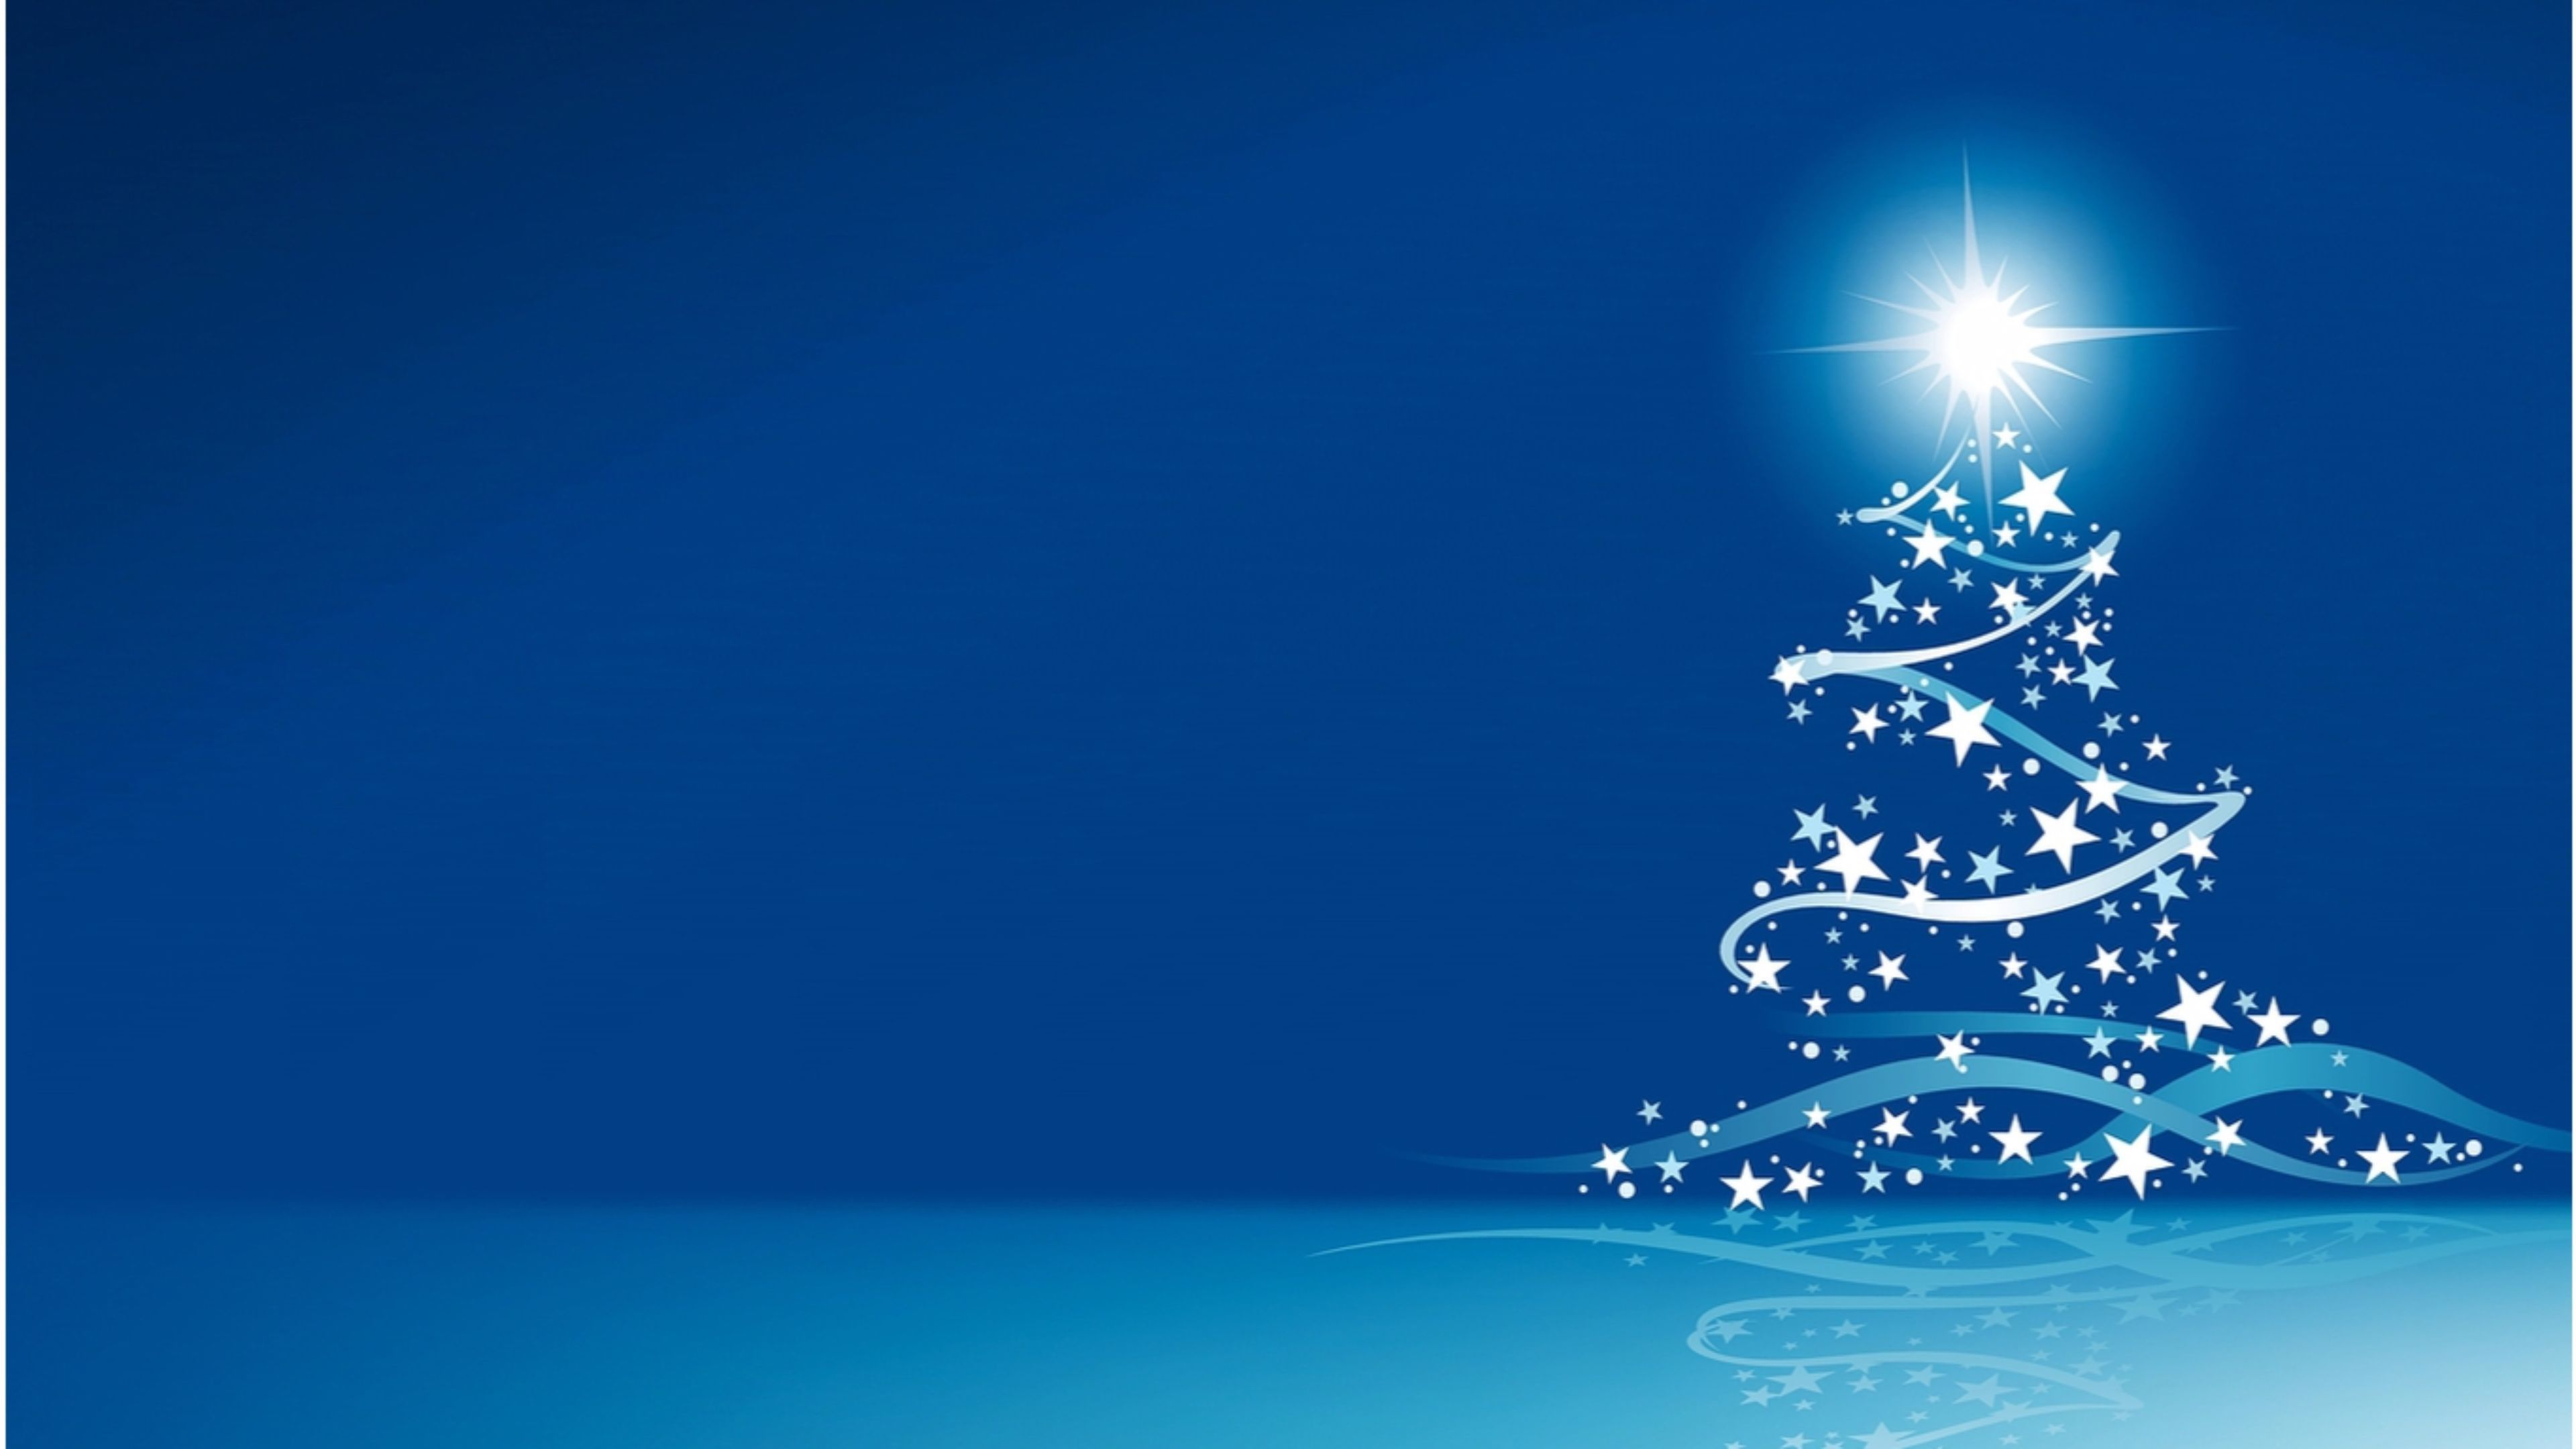 Download Image In 2021 Blue Christmas Background Christmas Screen Savers Christmas Background